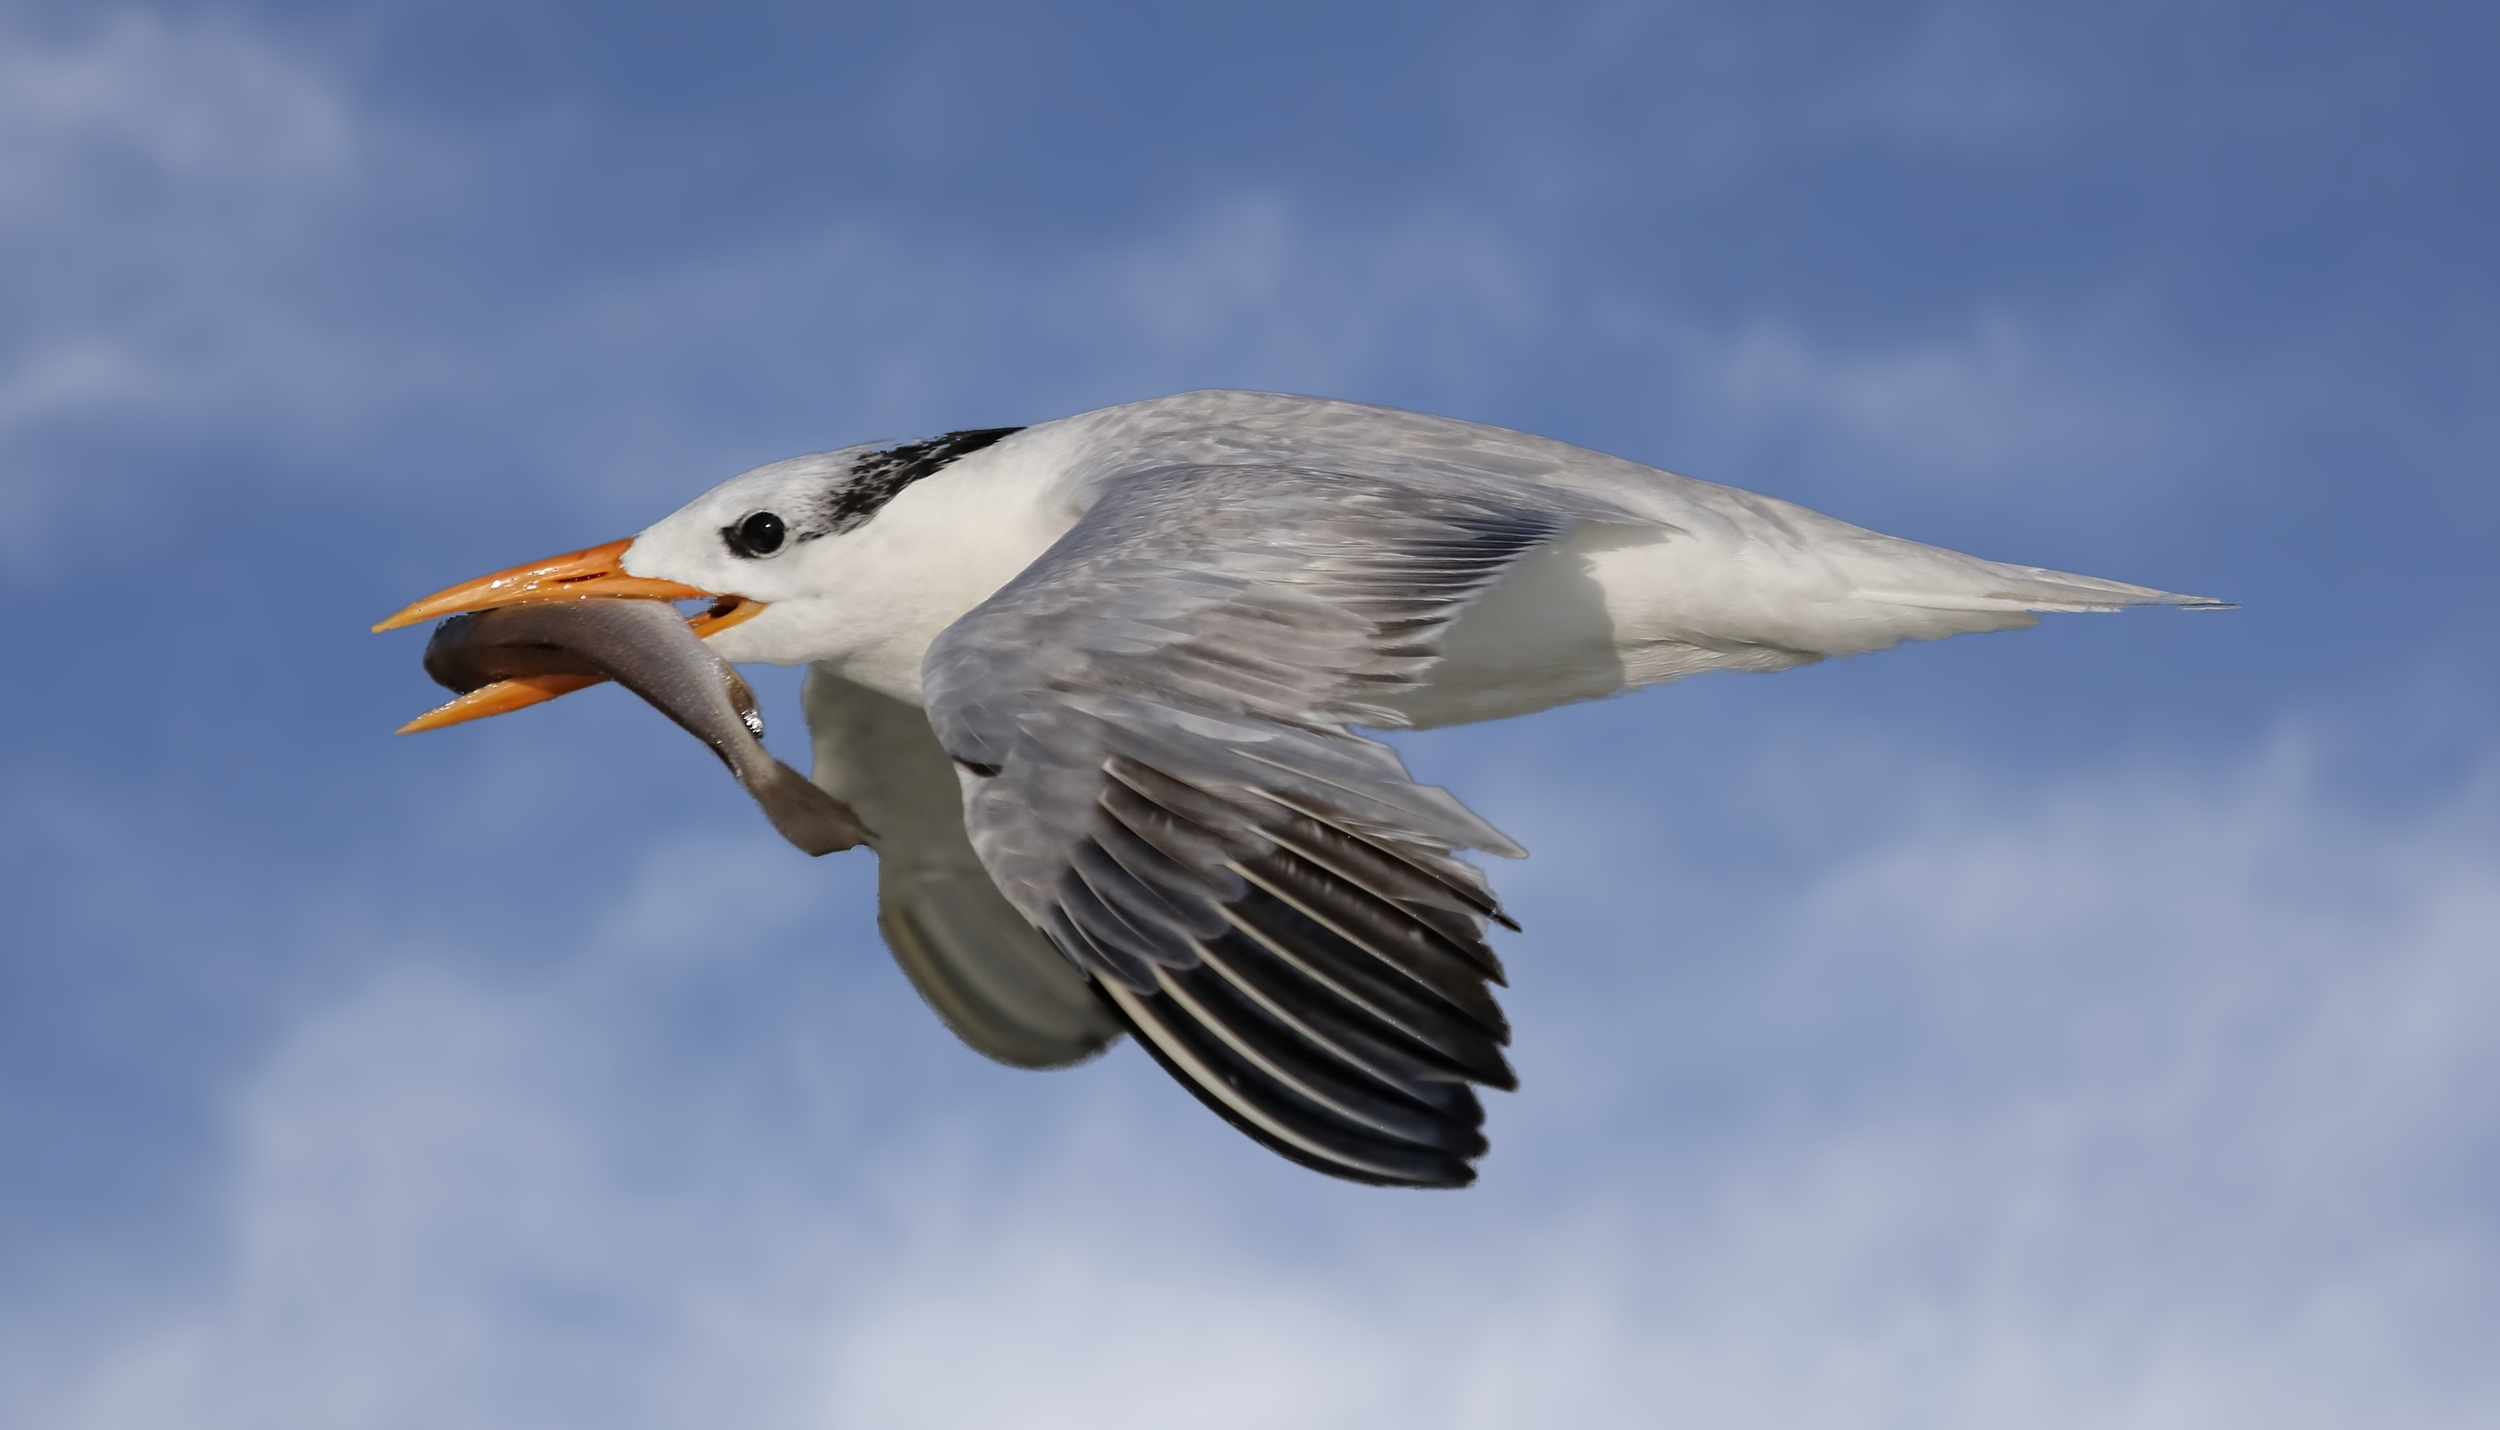 It takes a Royal village to raise a Royal Tern and lots of fish at Huguenot Beach in August.